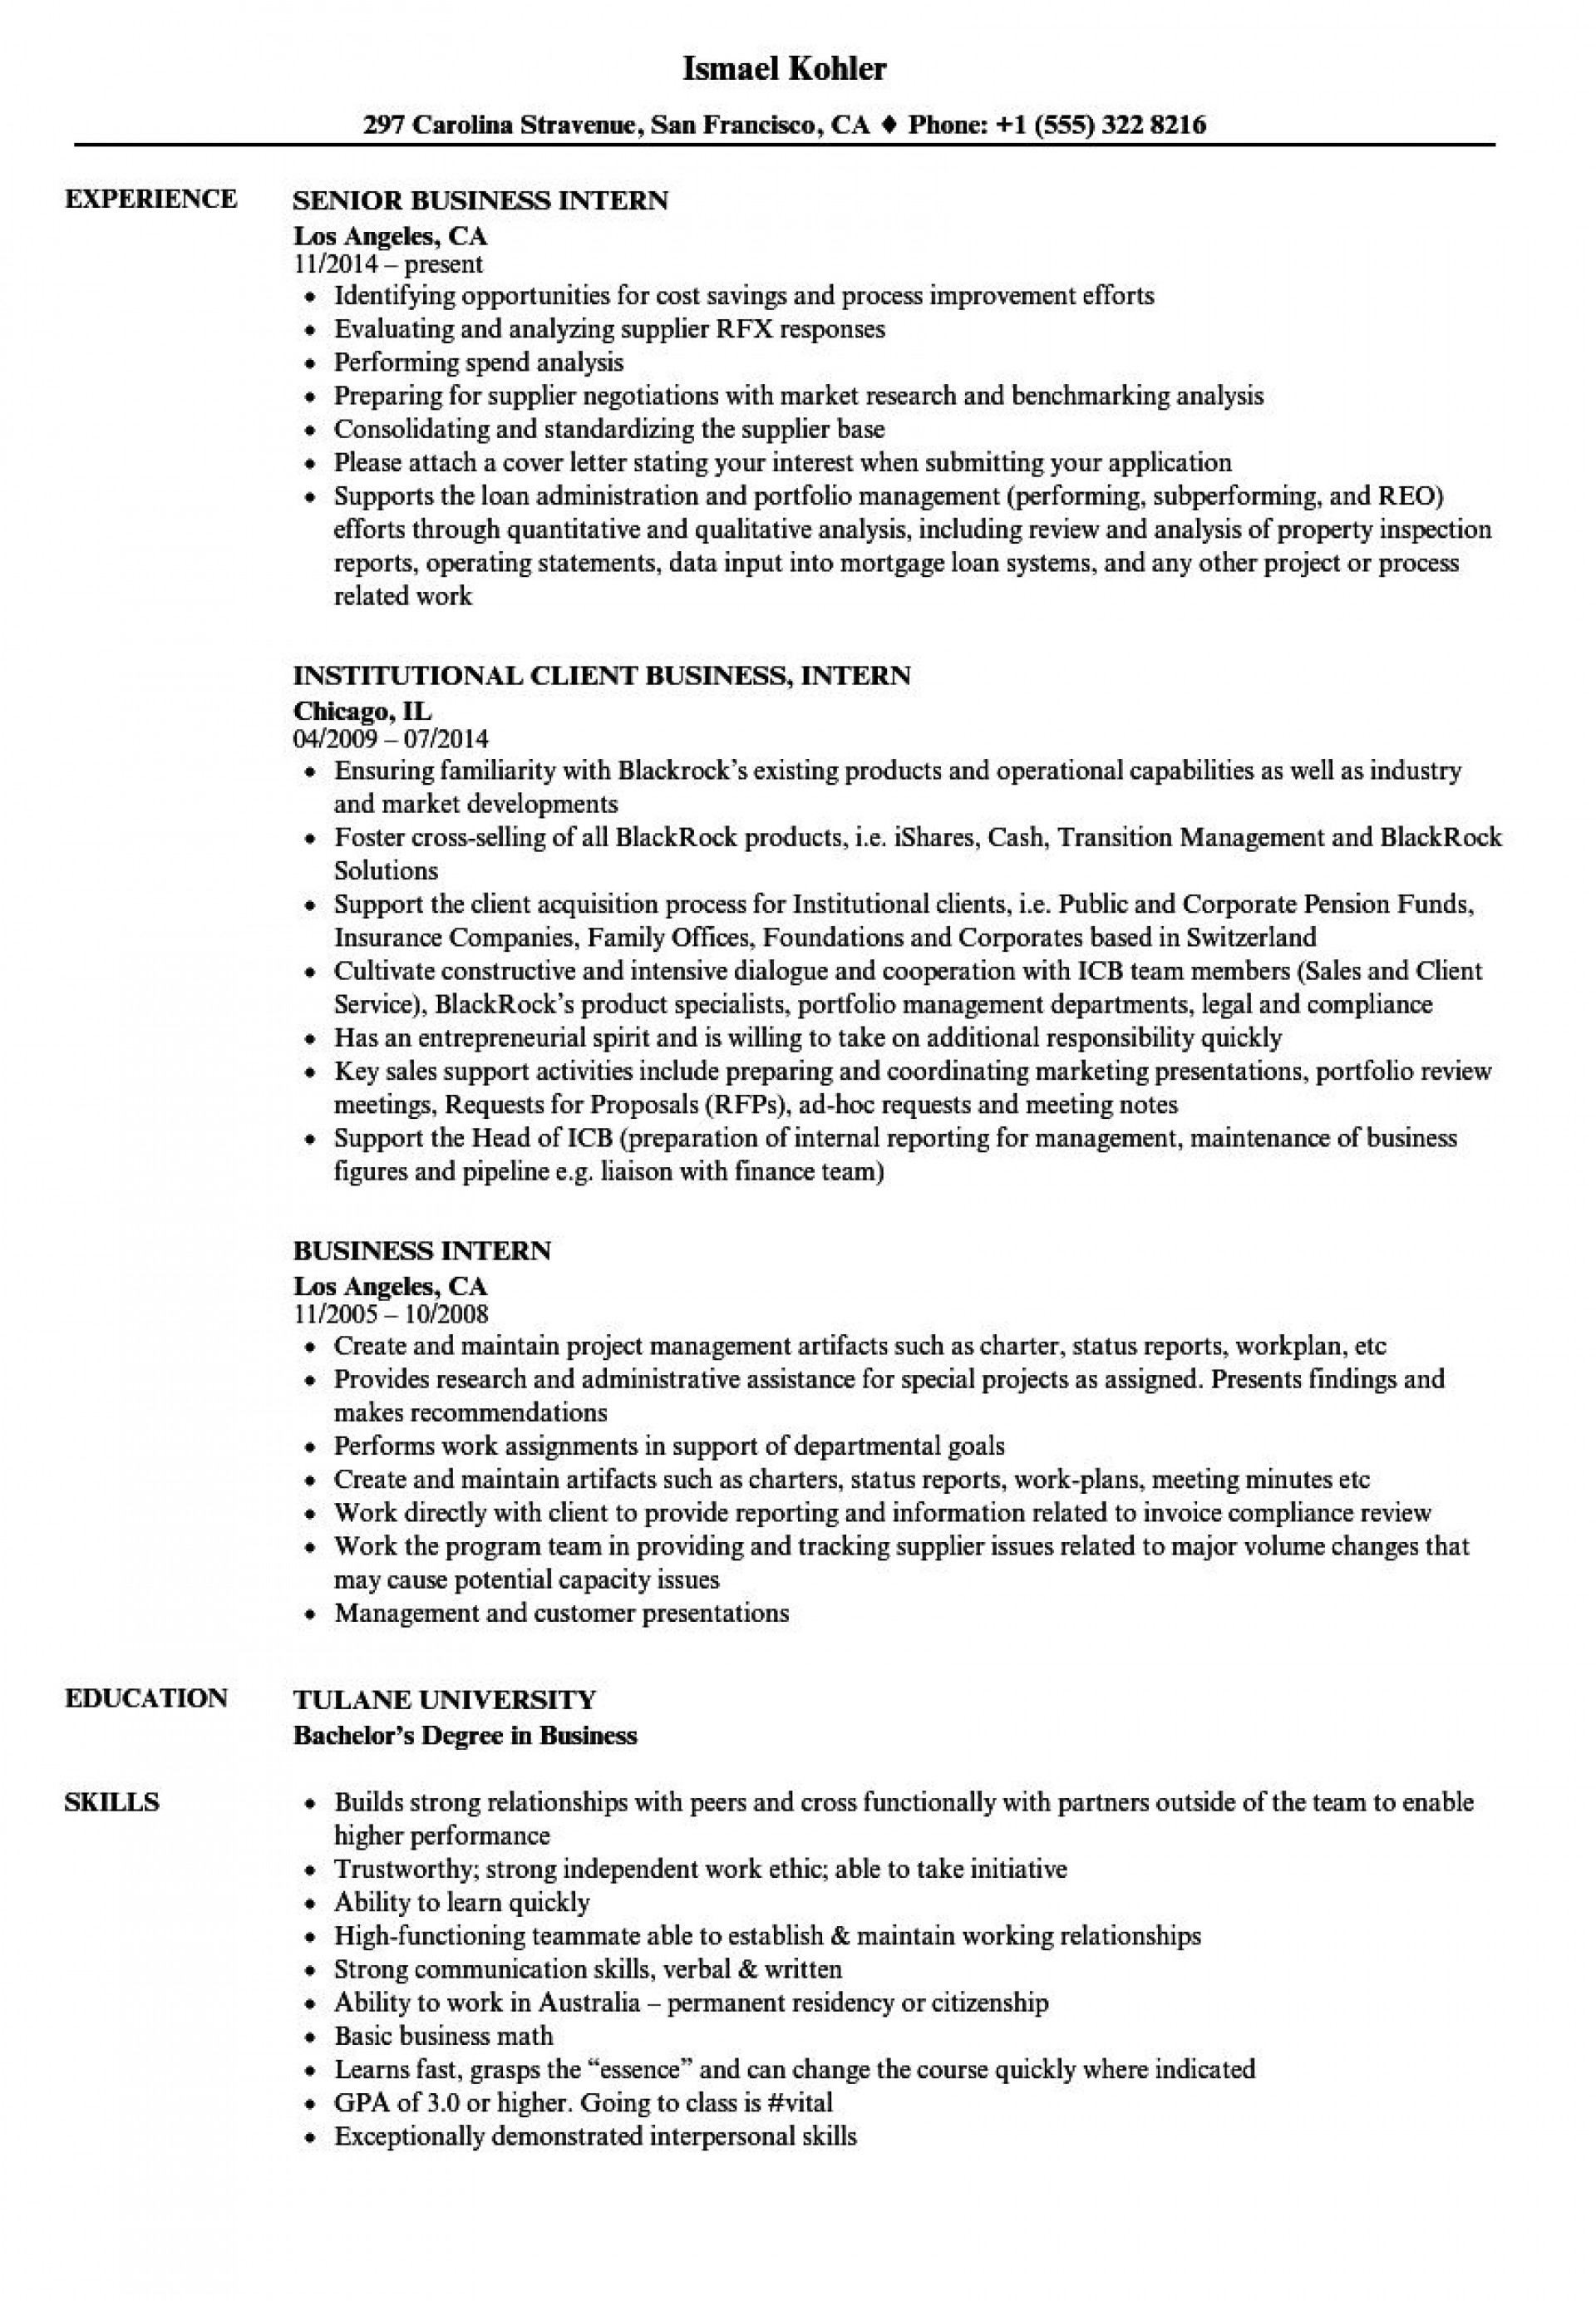 001 Fearsome Resume Template For Intern Concept  Interns Internship In Engineering Law Example1920